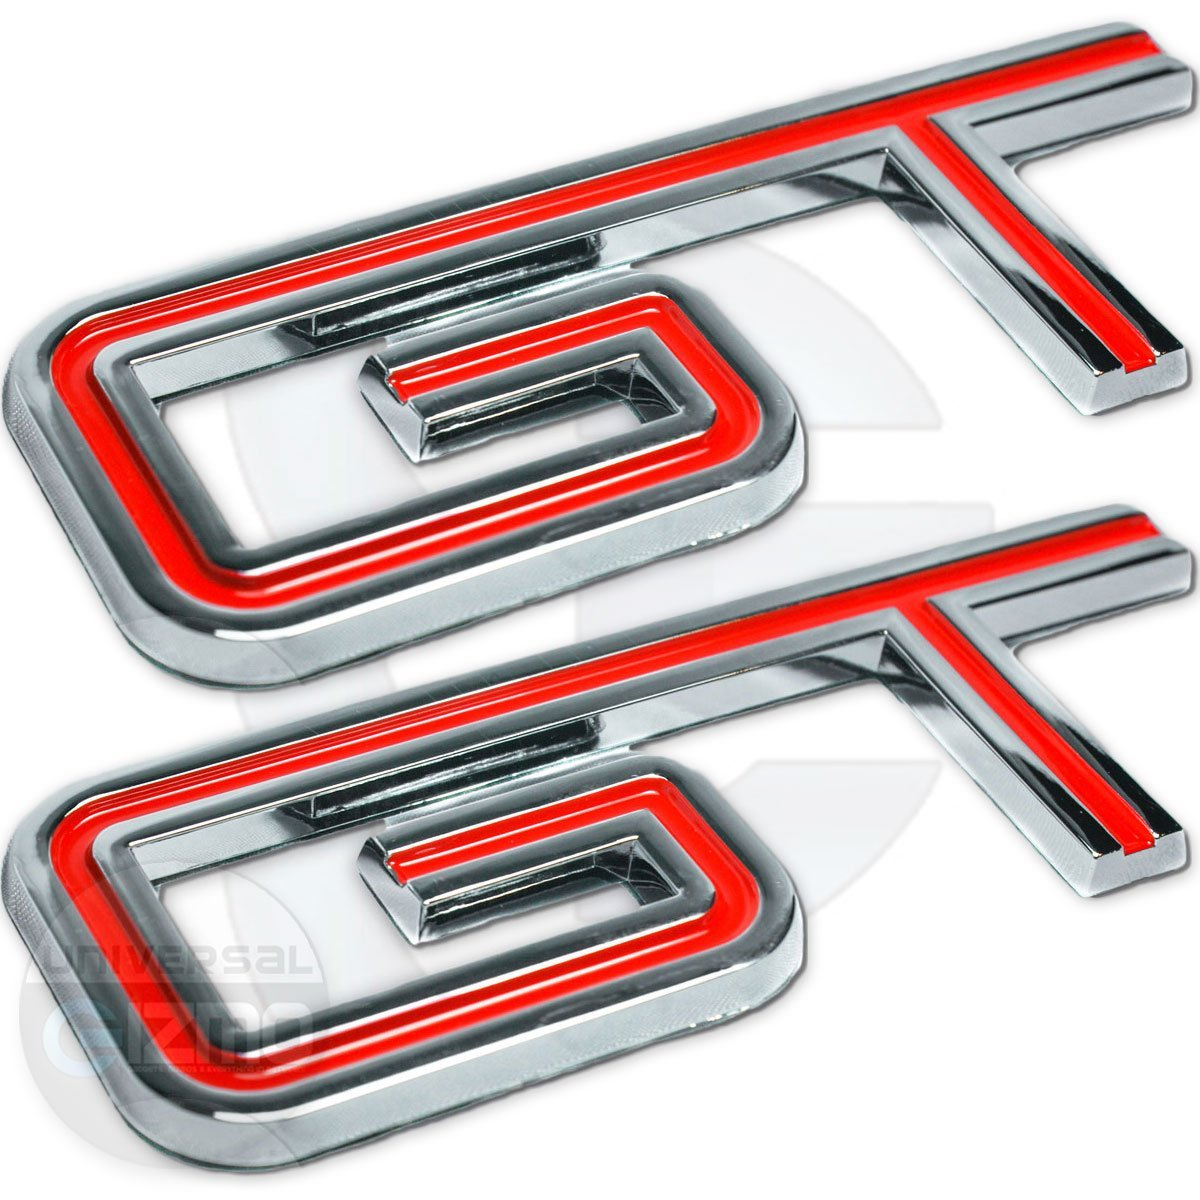 Red Ford Mustang GT Emblem 2005-2010 Fender and Trunk Replacement Badge Decal